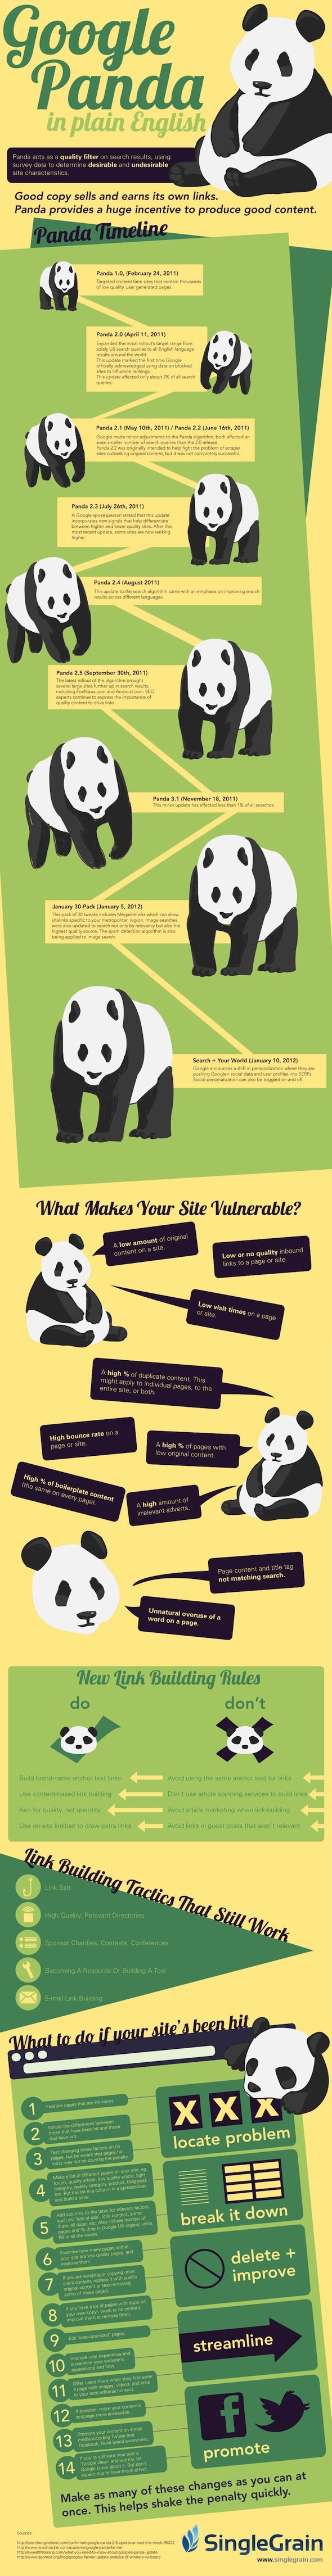 Google Panda Update [Infographic]